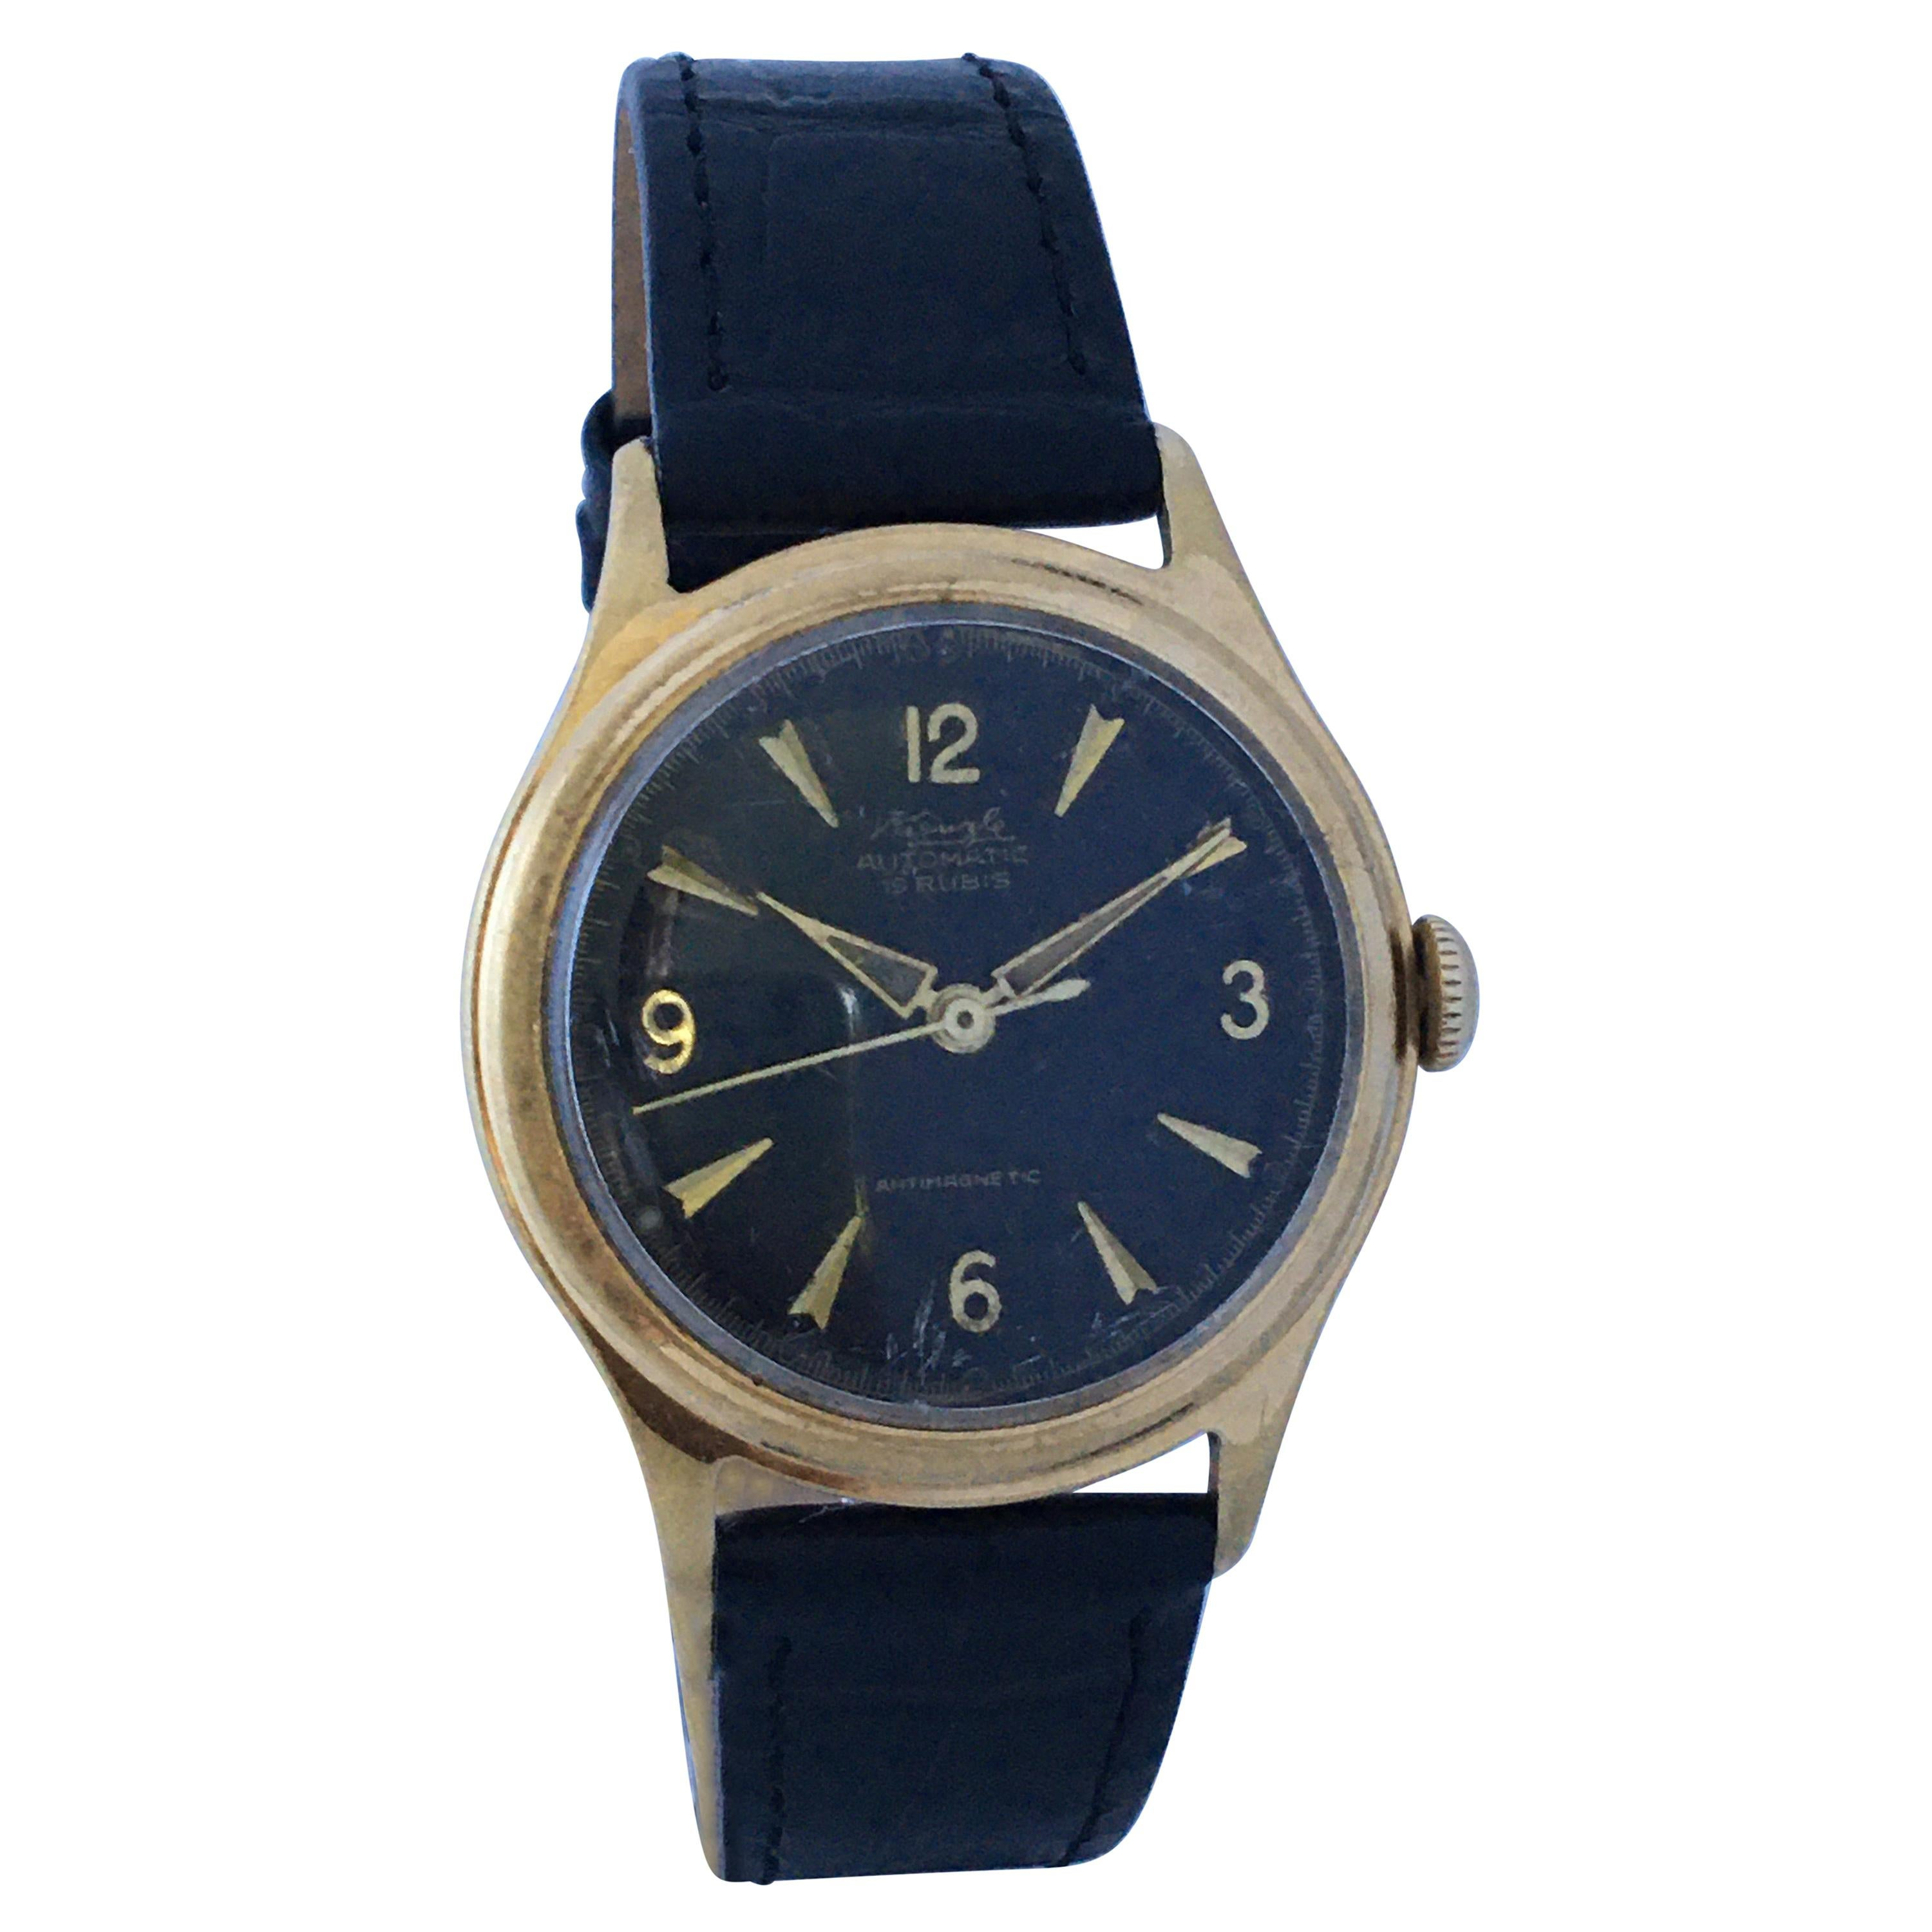 Vintage 1960s Gold-Plated and Stainless Steel Bubble Back Automatic Watch